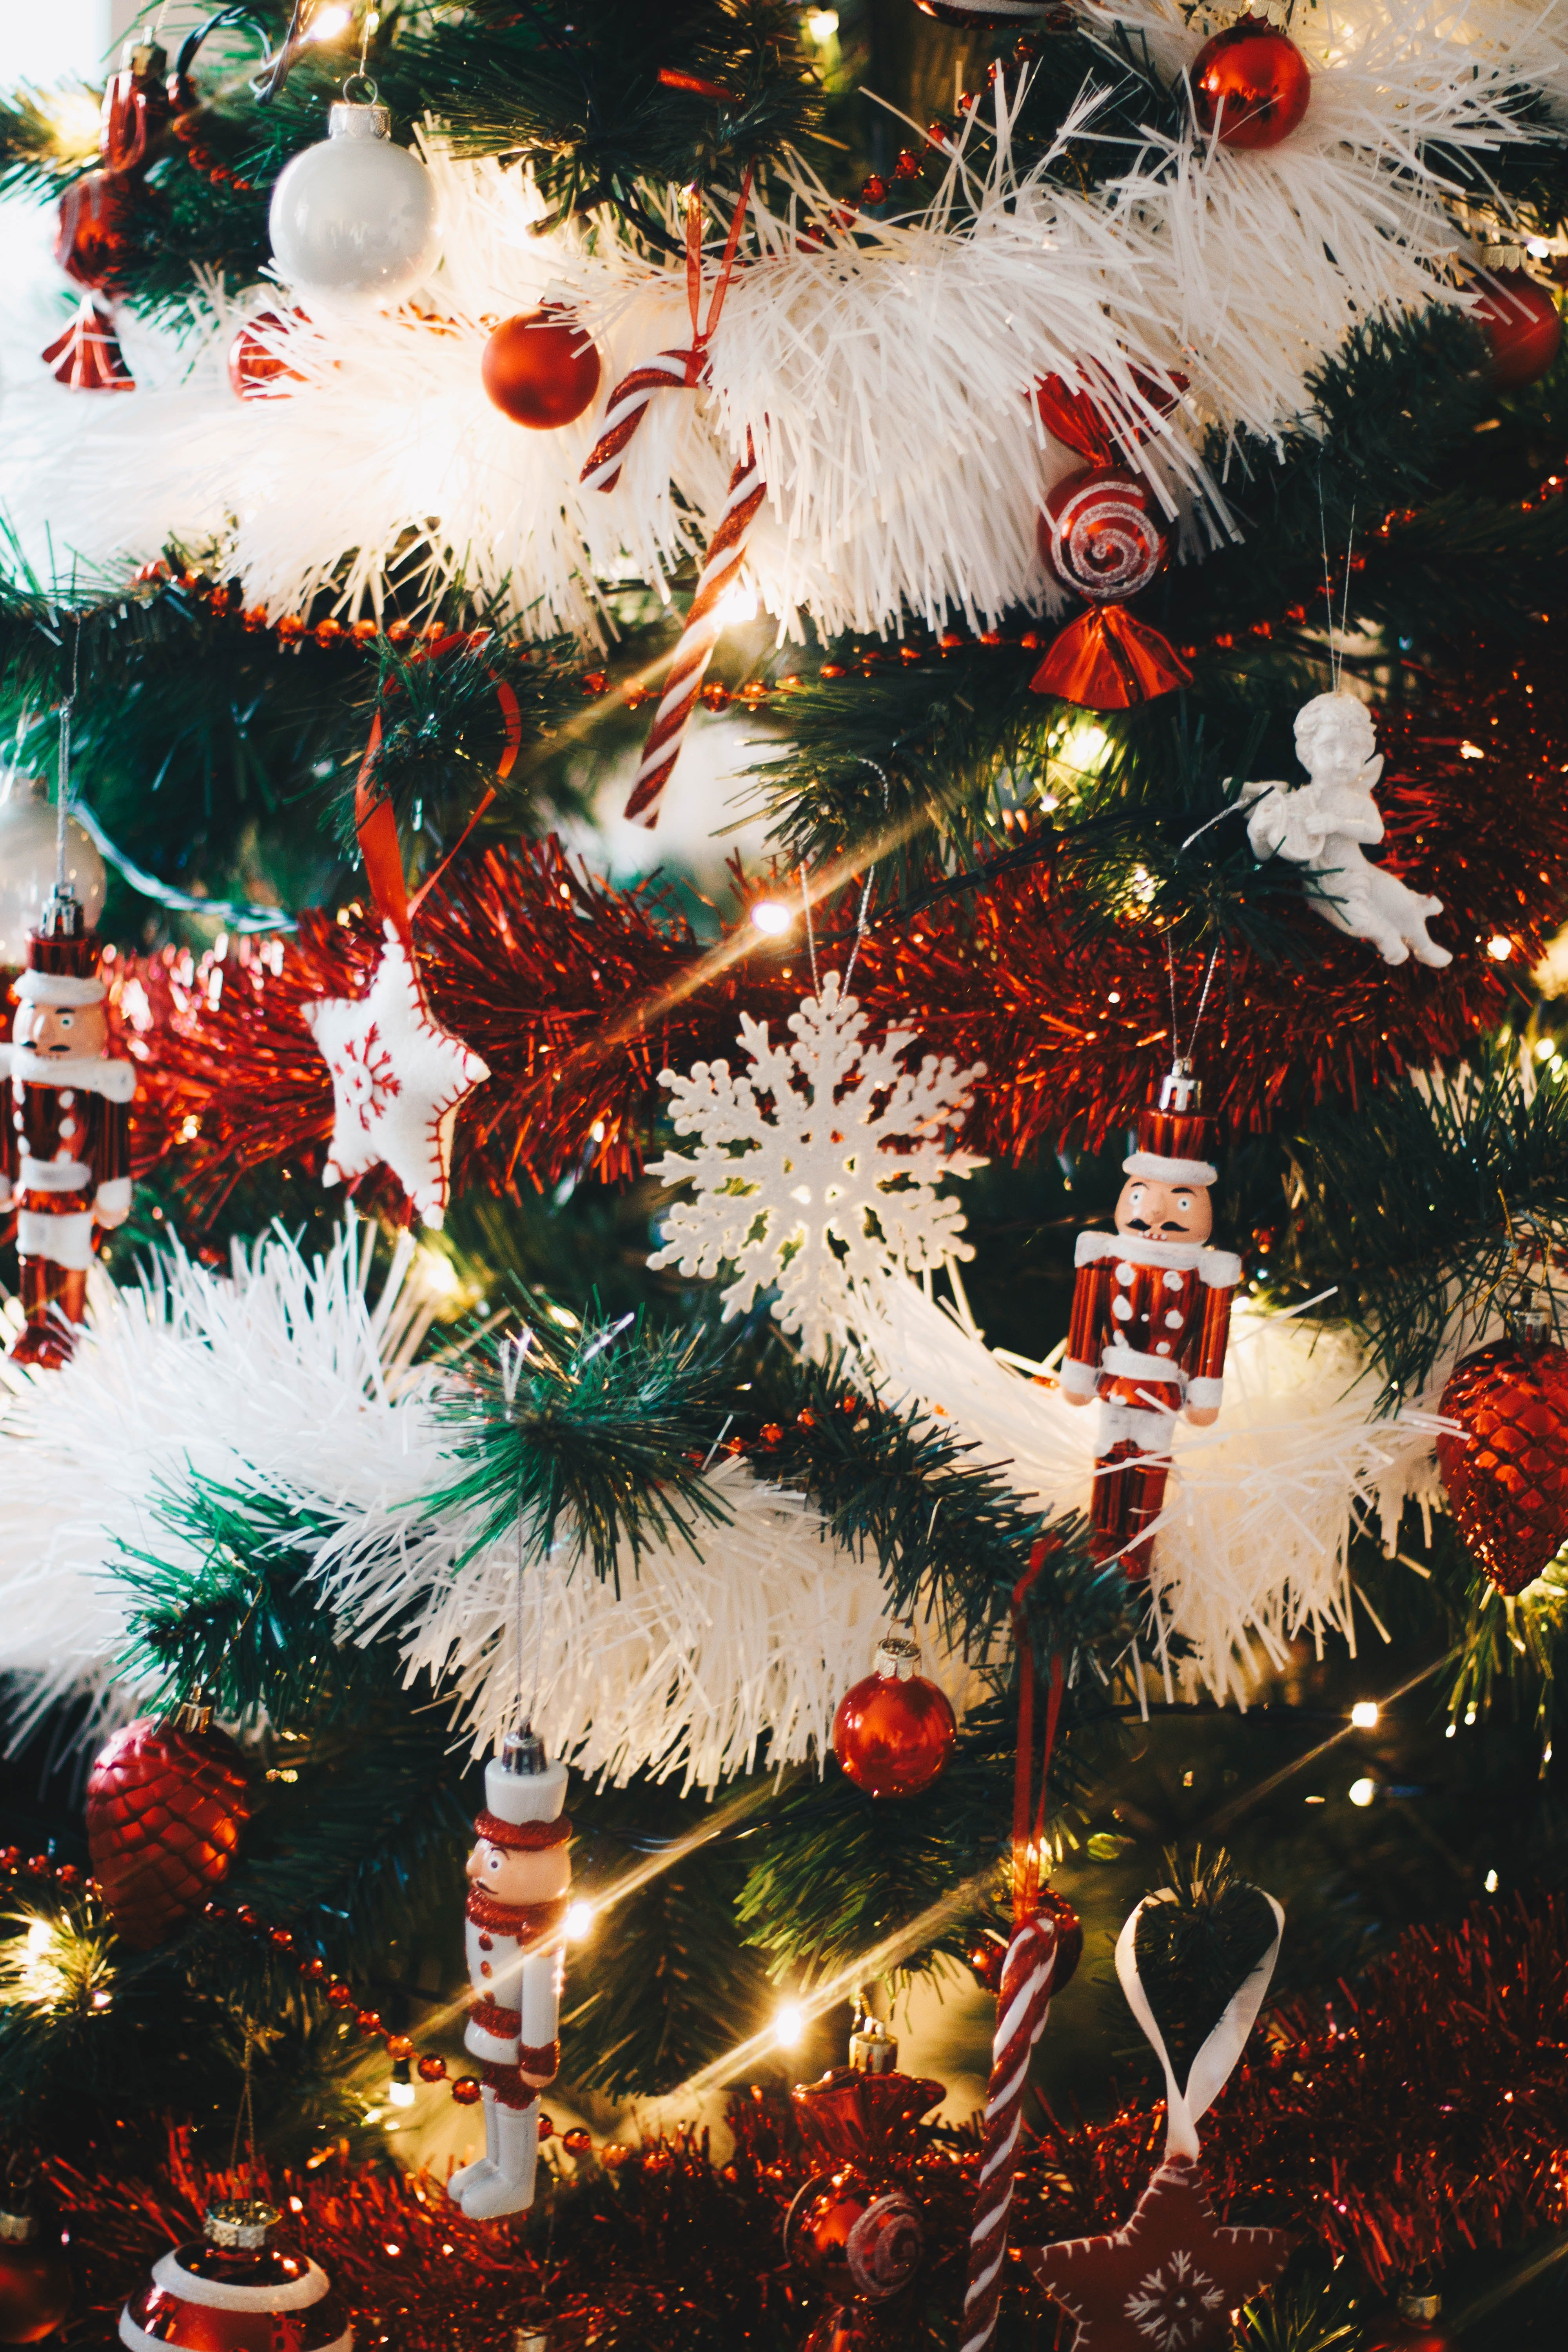 A close up view of decorations on a Christmas tree. | Source: Pexels.